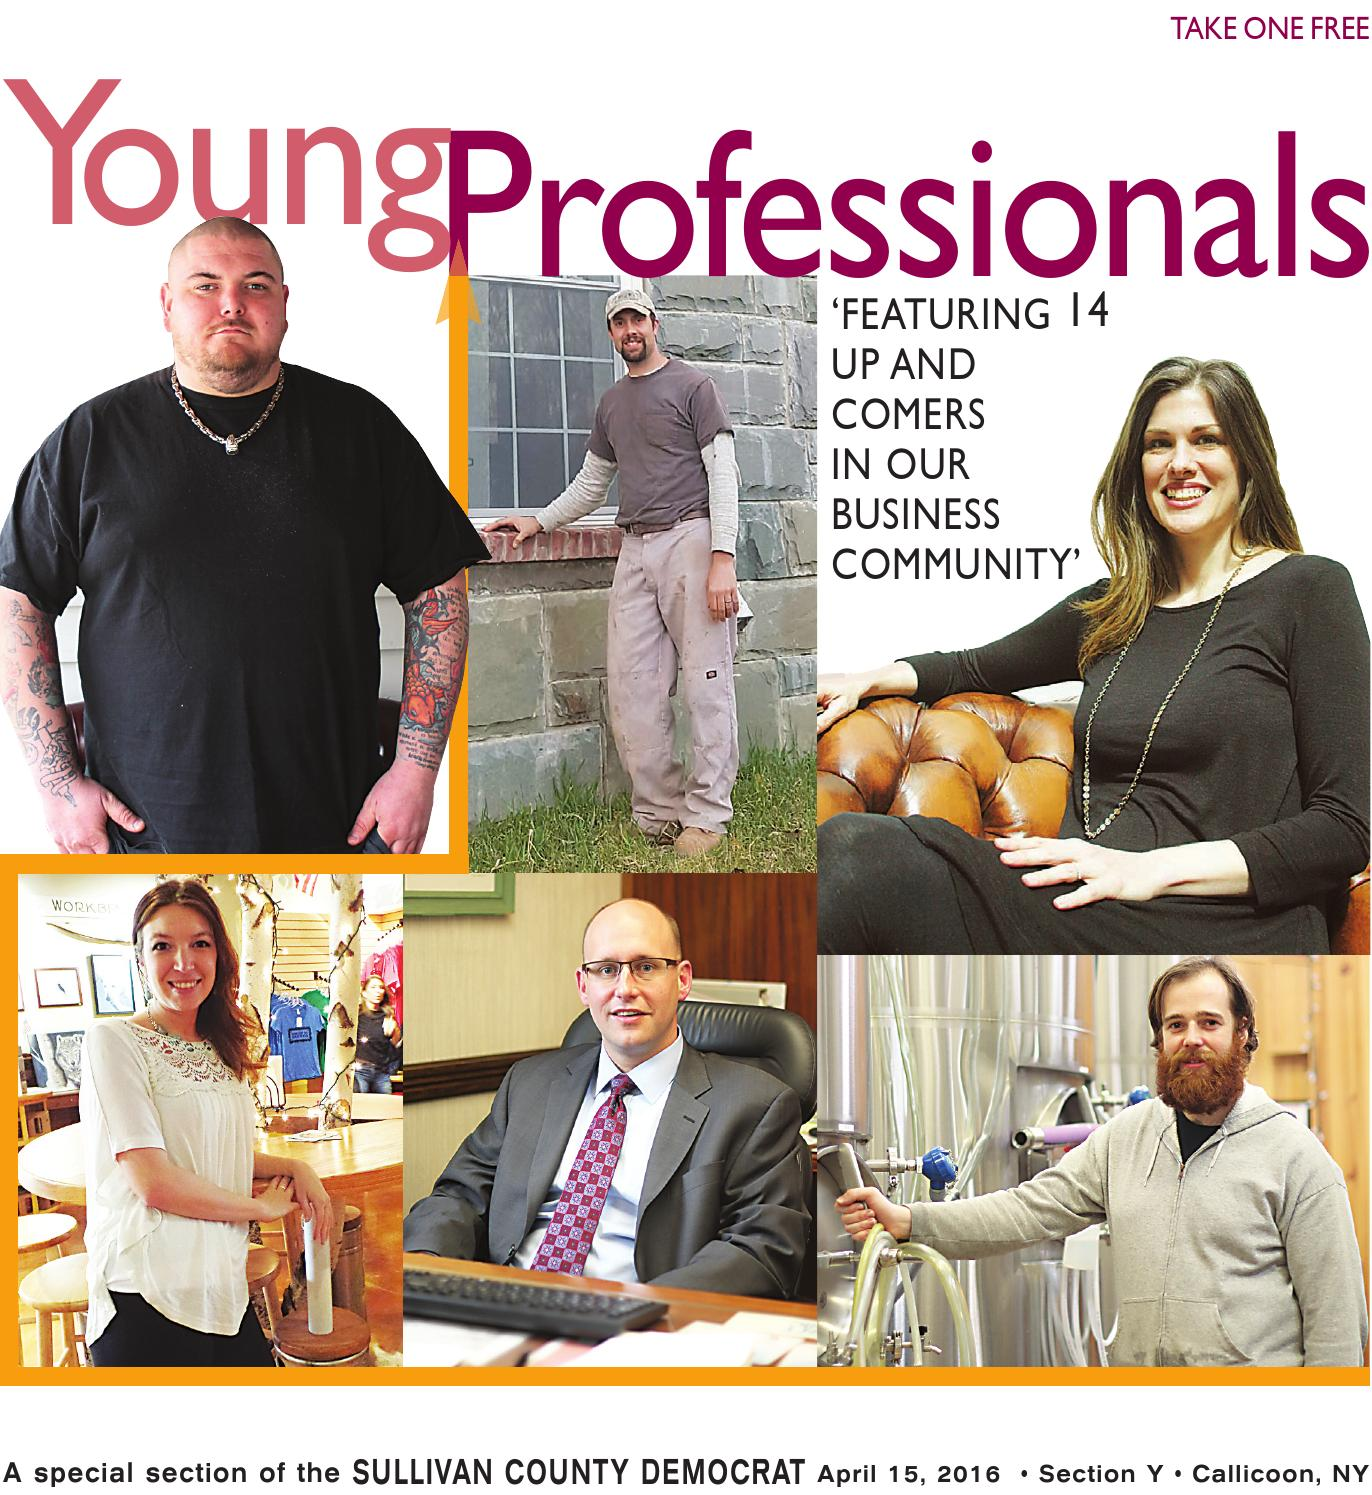 young professional magazine A 21st century digital media company curating young professionals hungry for non-pretentious advice on making sense of the world, starting with themselves.